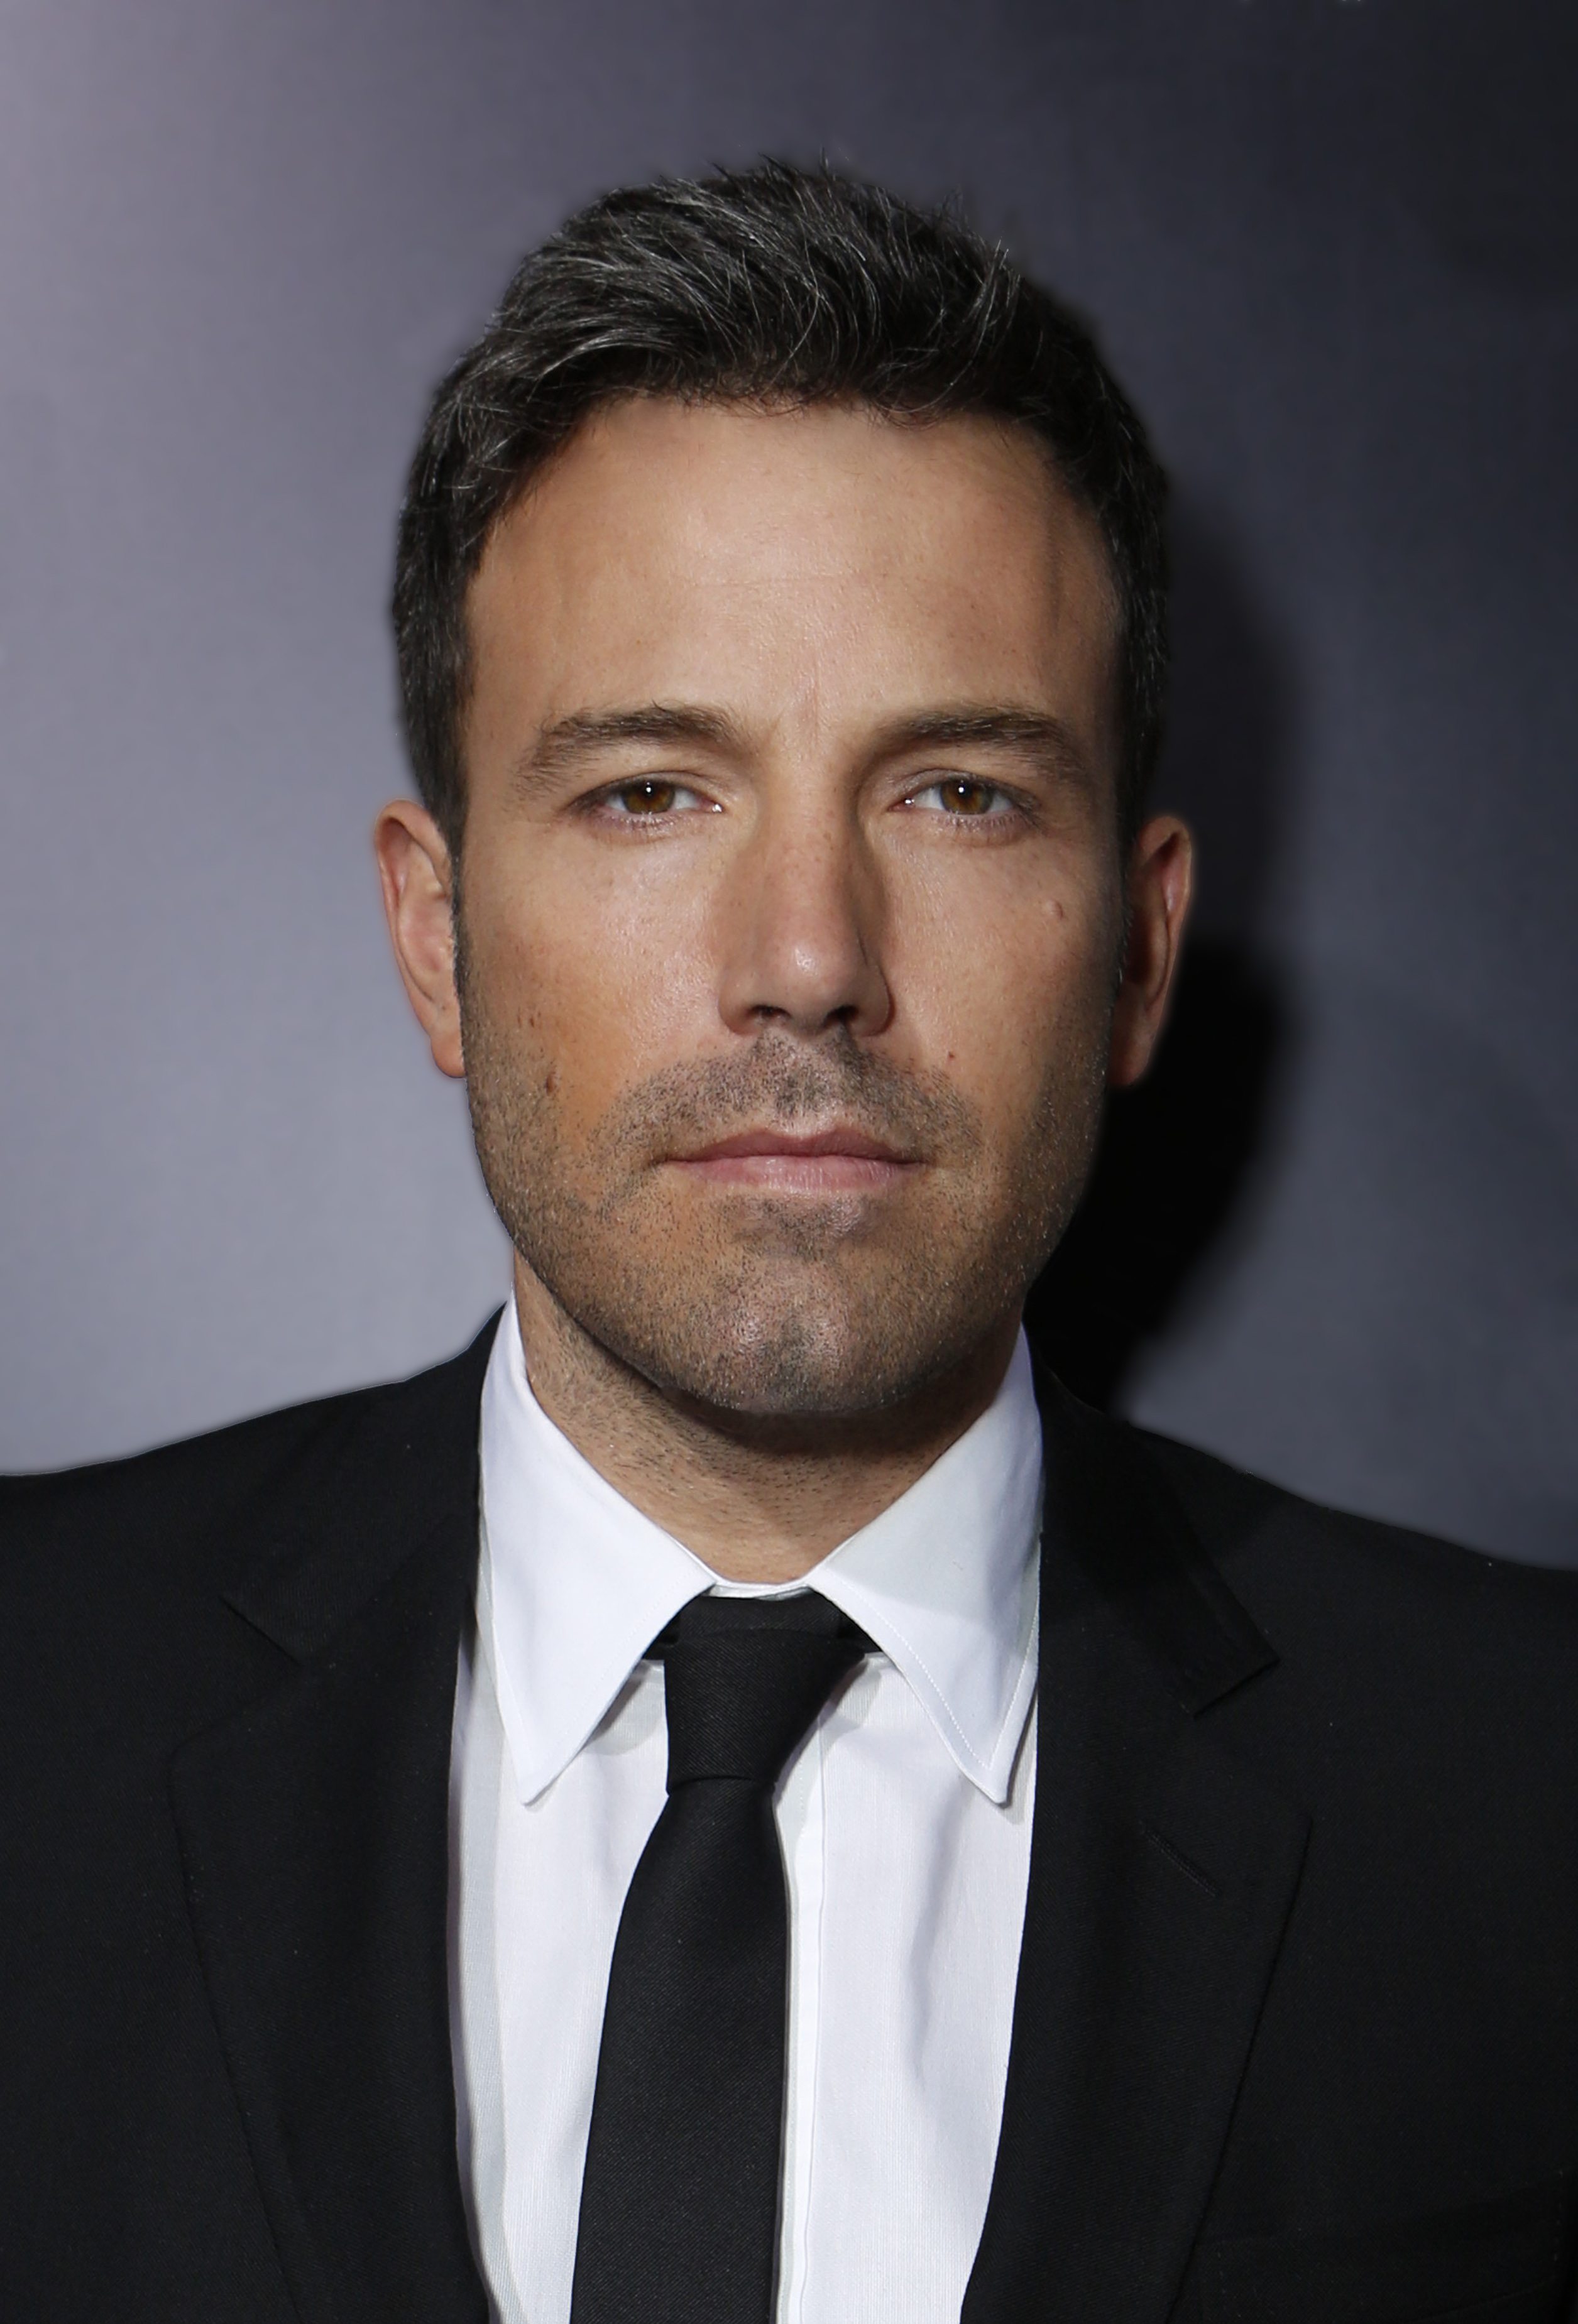 Ben Affleck To Be Honored At The 22nd Annual Ucla Film